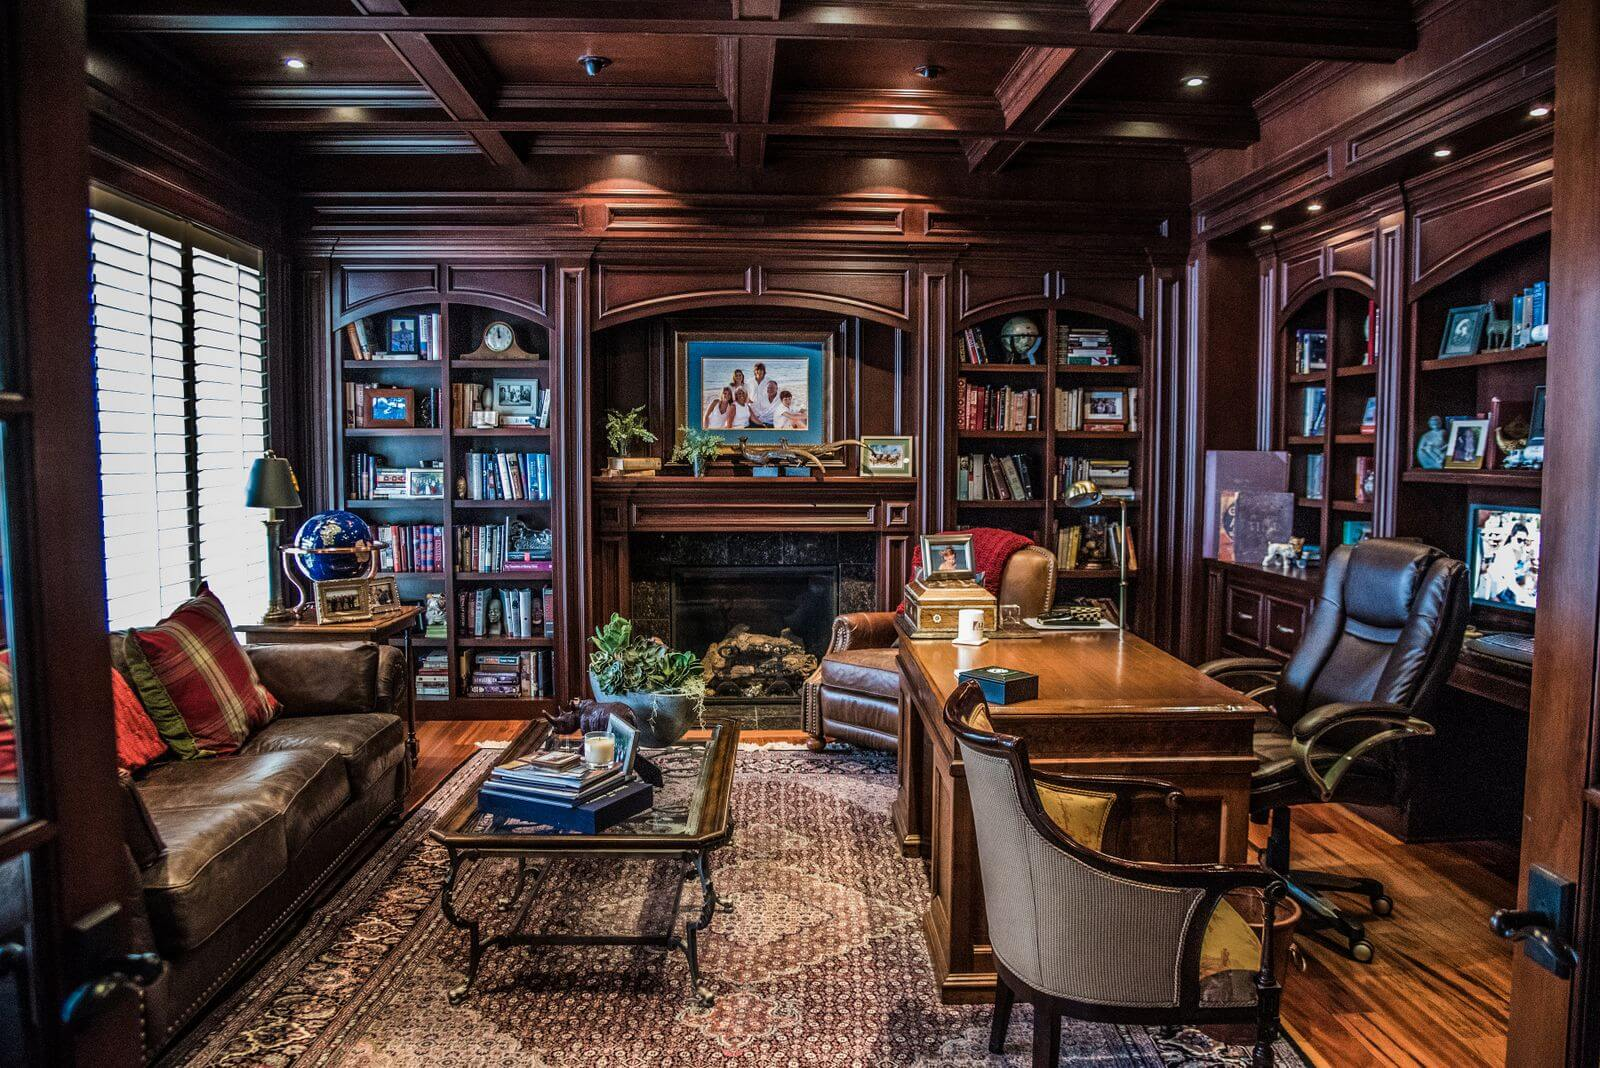 Bluetree Turns Greatrooms Into Really Great Rooms Our Team Uses Built In Furniture Pieces Shelving Library Panels And Other Ways To Hide All The Modern